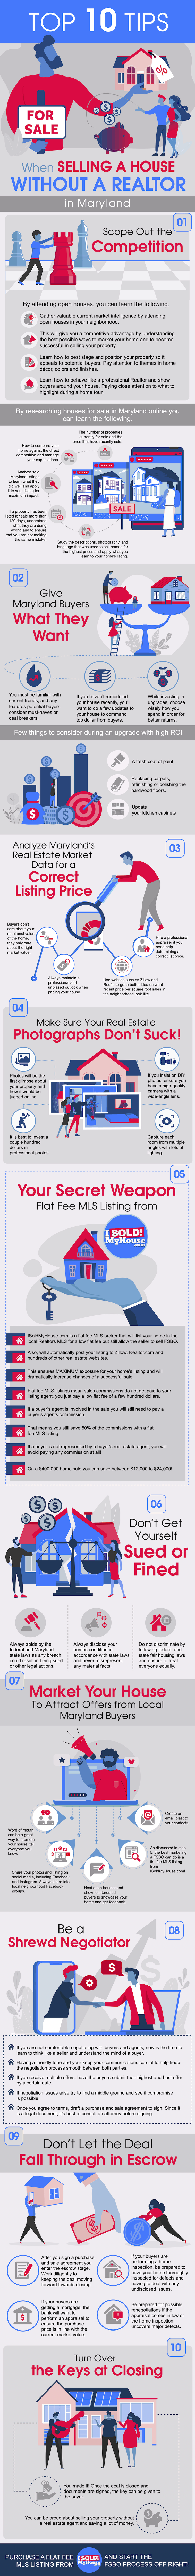 infographic of the 10 steps to sell a house in maryland without an agent